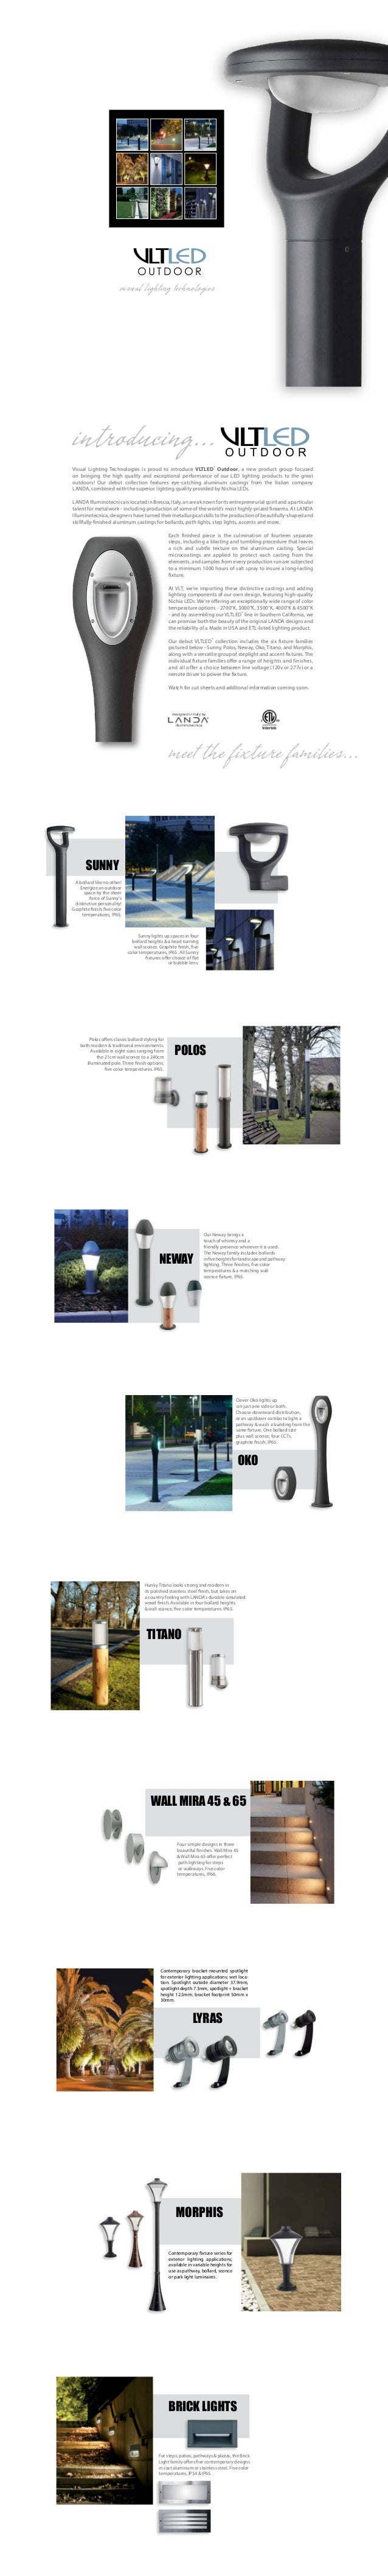 Visual Lighting Technologies Is Proud To Introduce VLTLED® Outdoor, A New  Product Group Focused